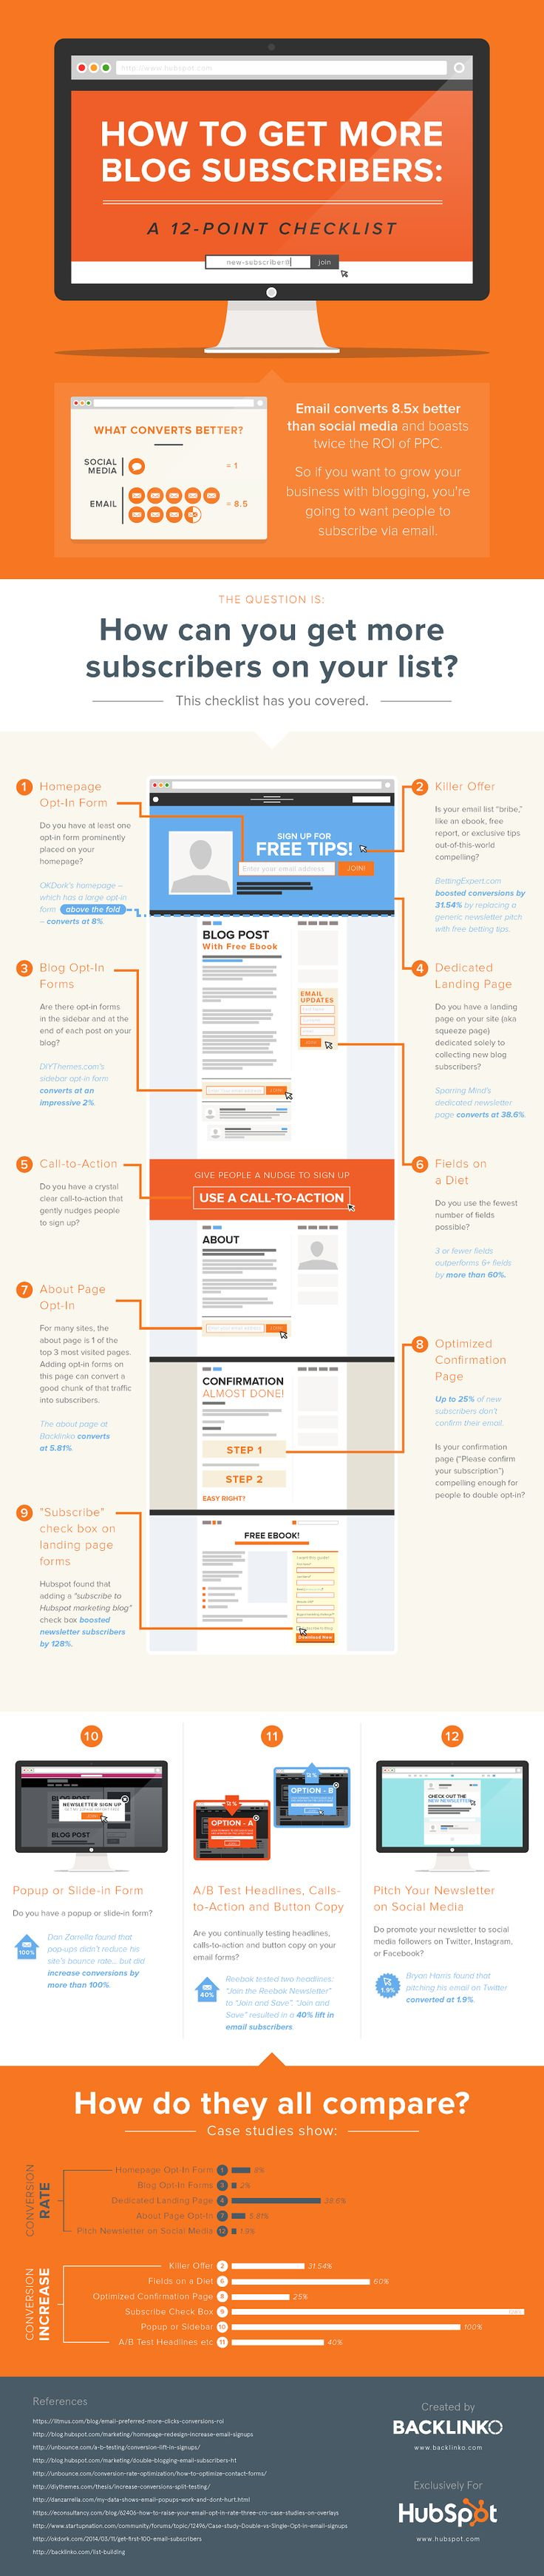 12 Ways to Get More Blog Subscribers - #infographic #blogging